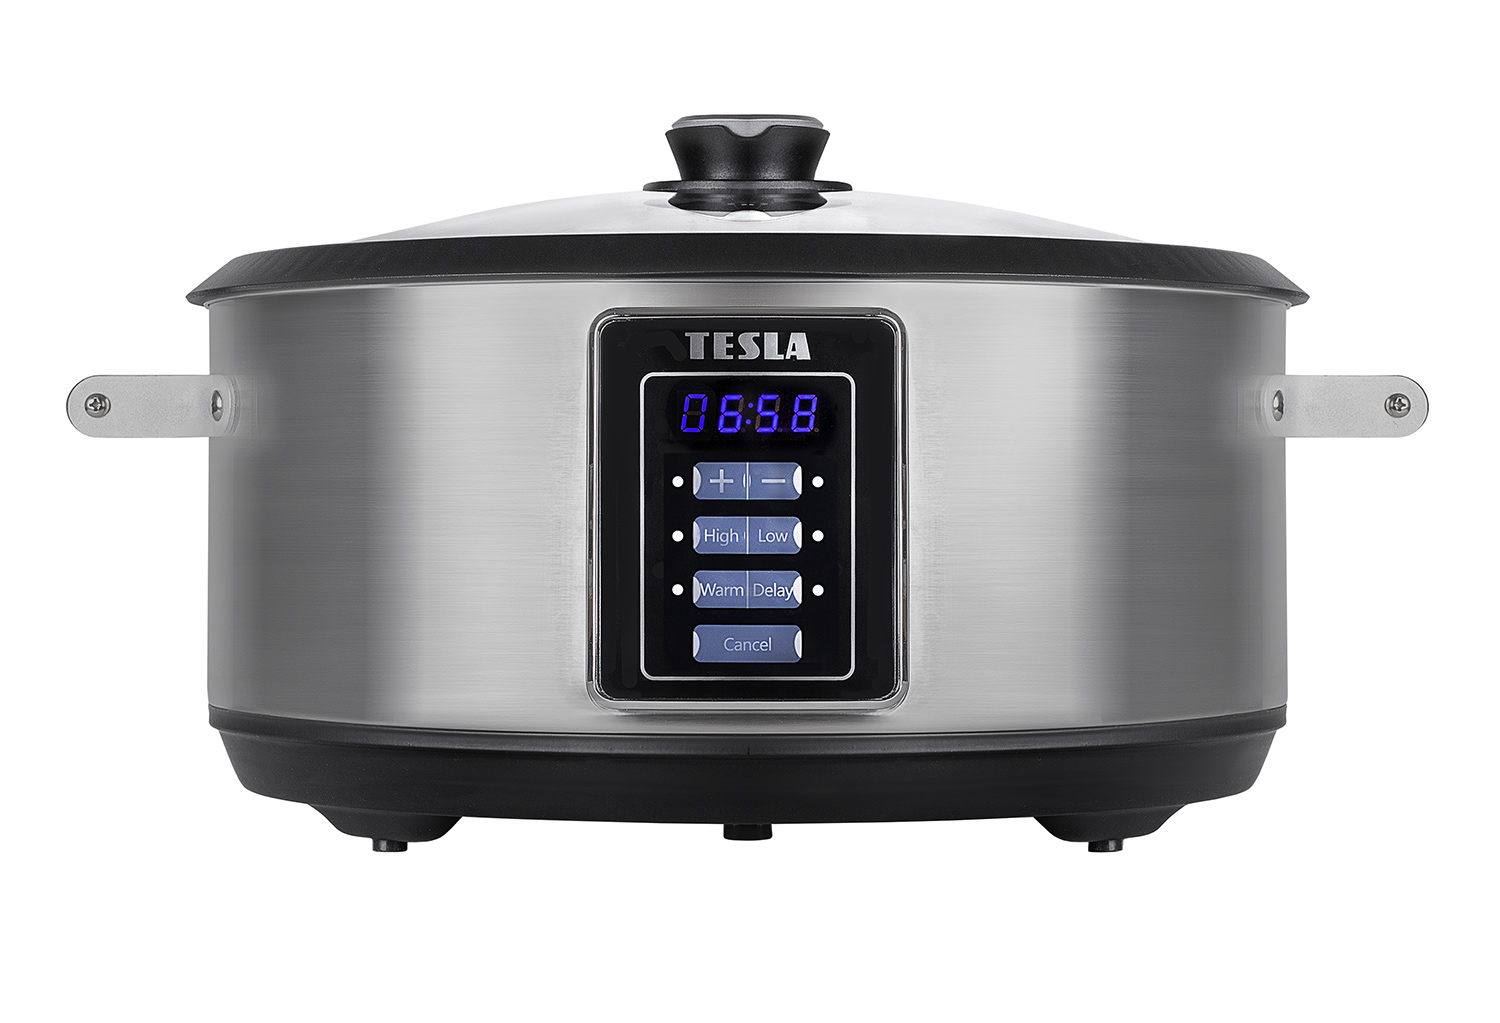 tesla-slowcook-s700_web